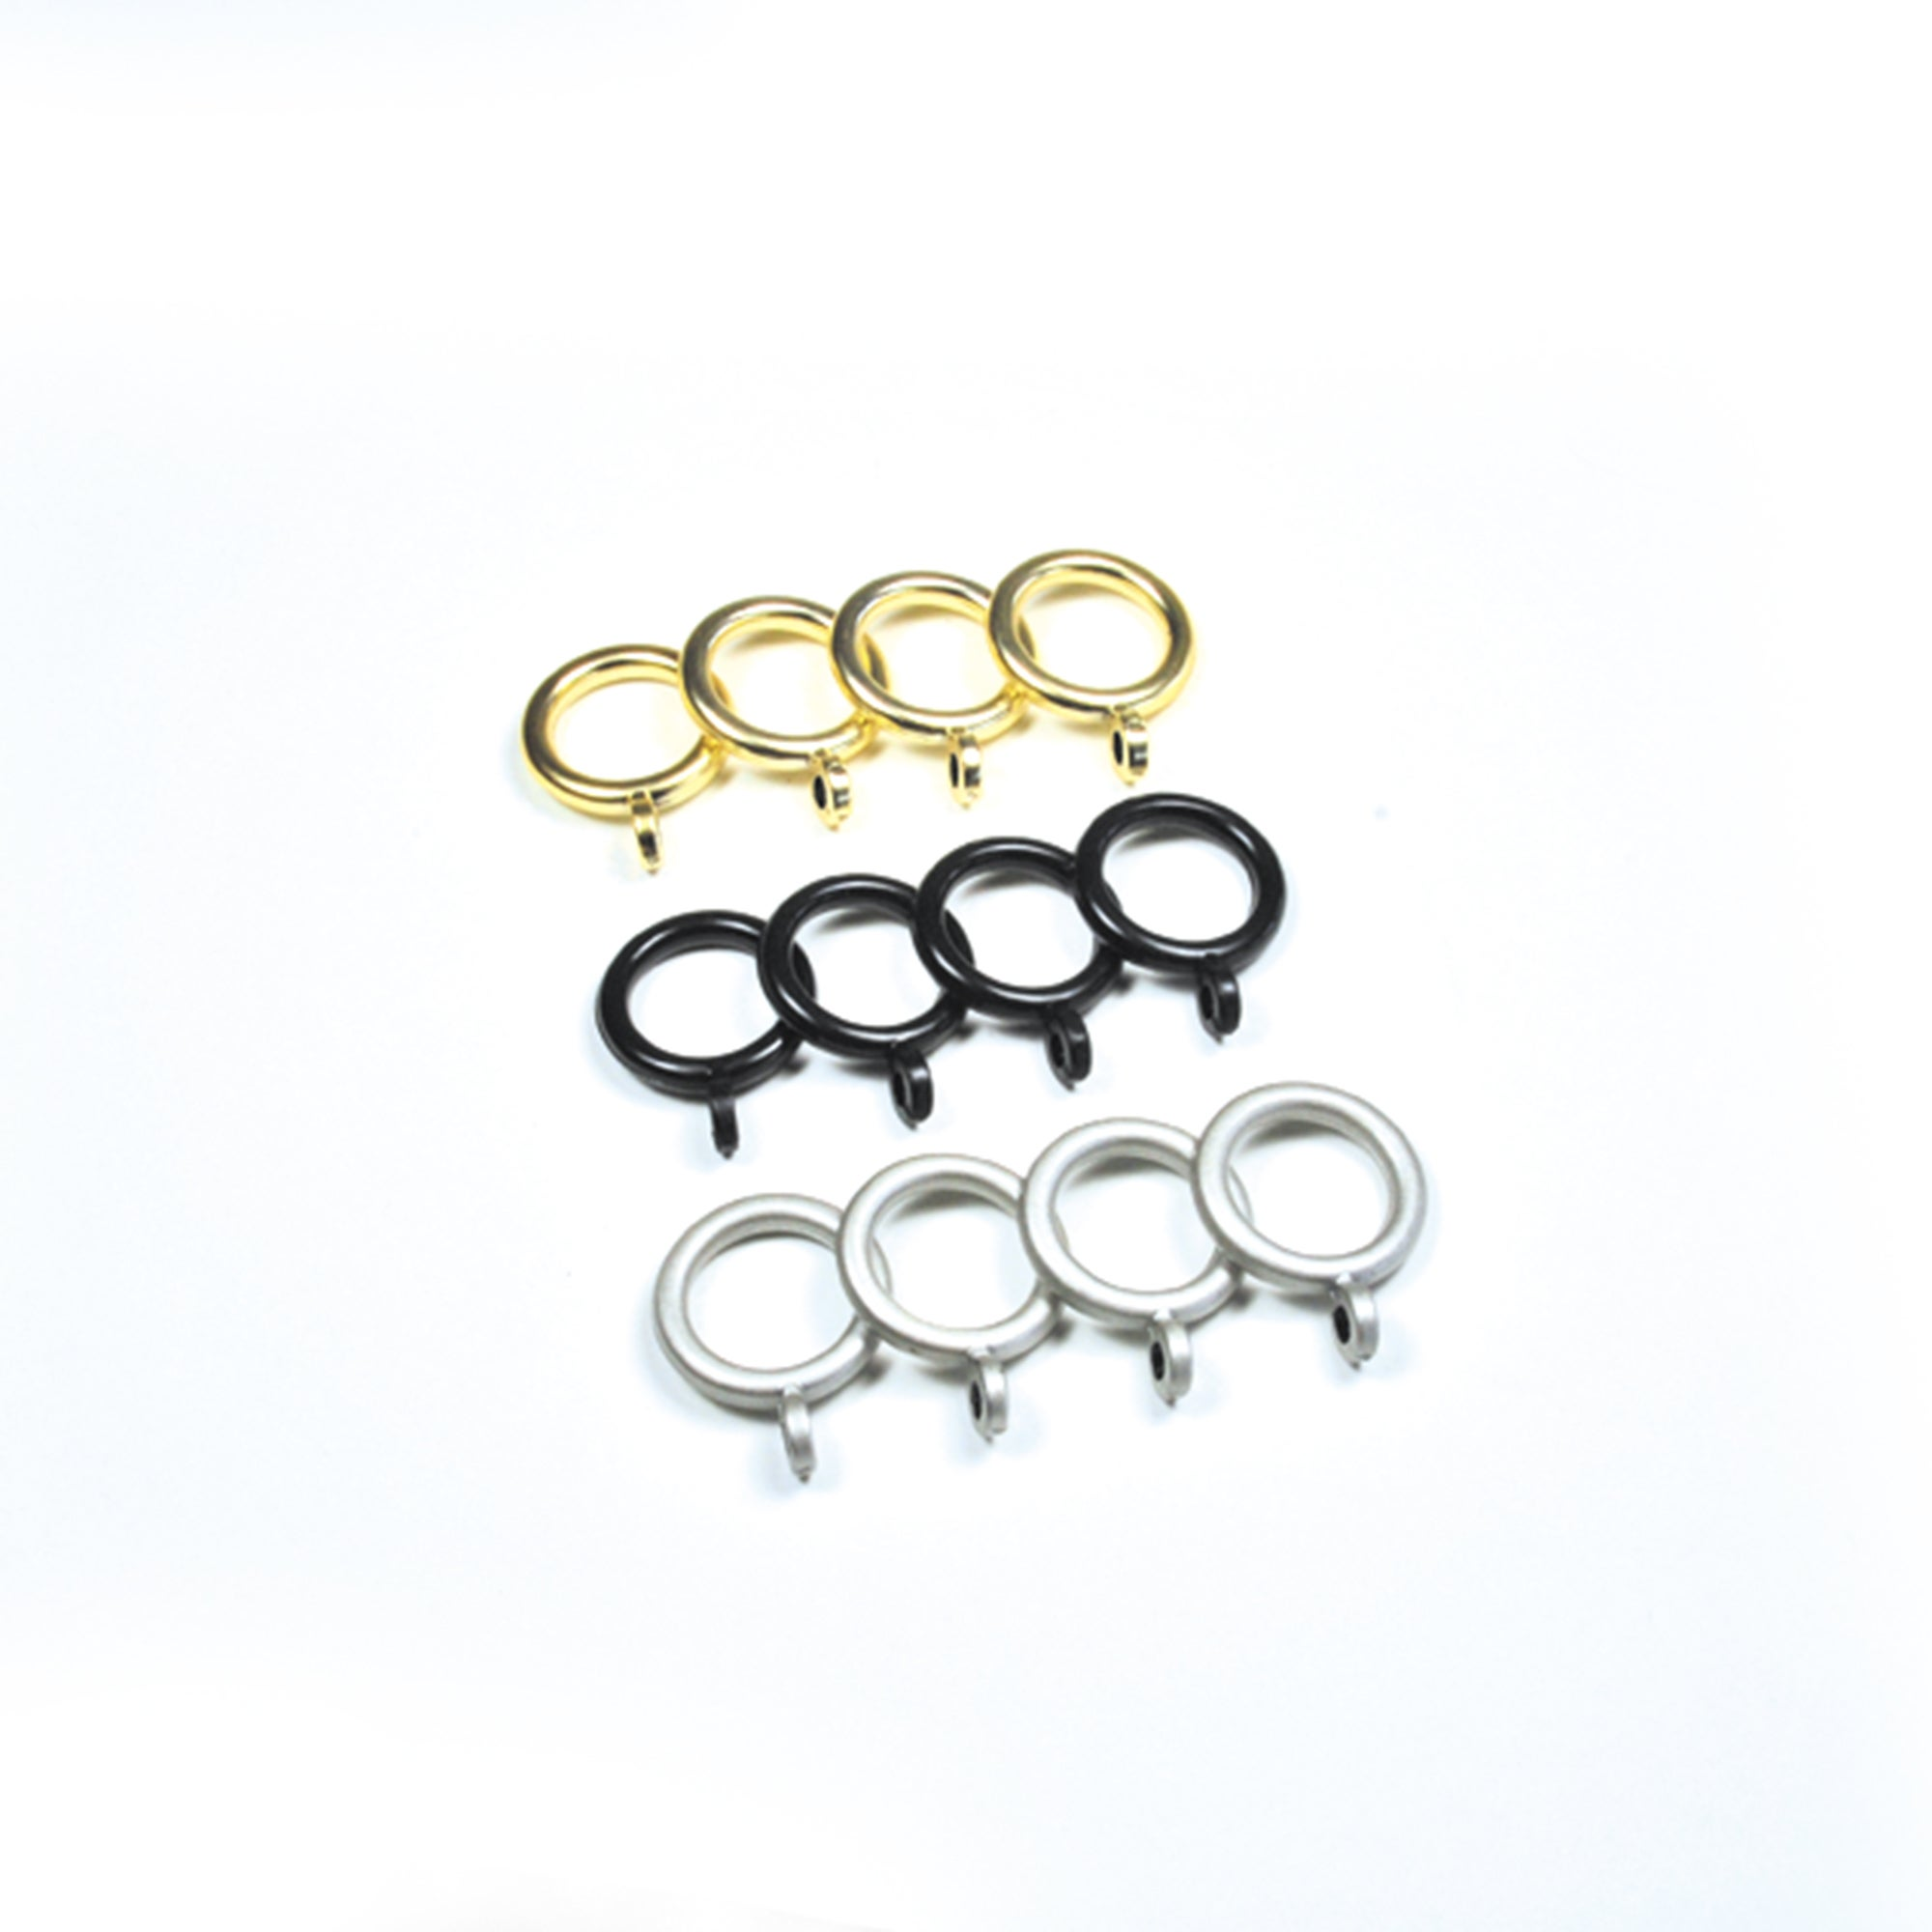 Knickel 19mm Cafe Rod Rings